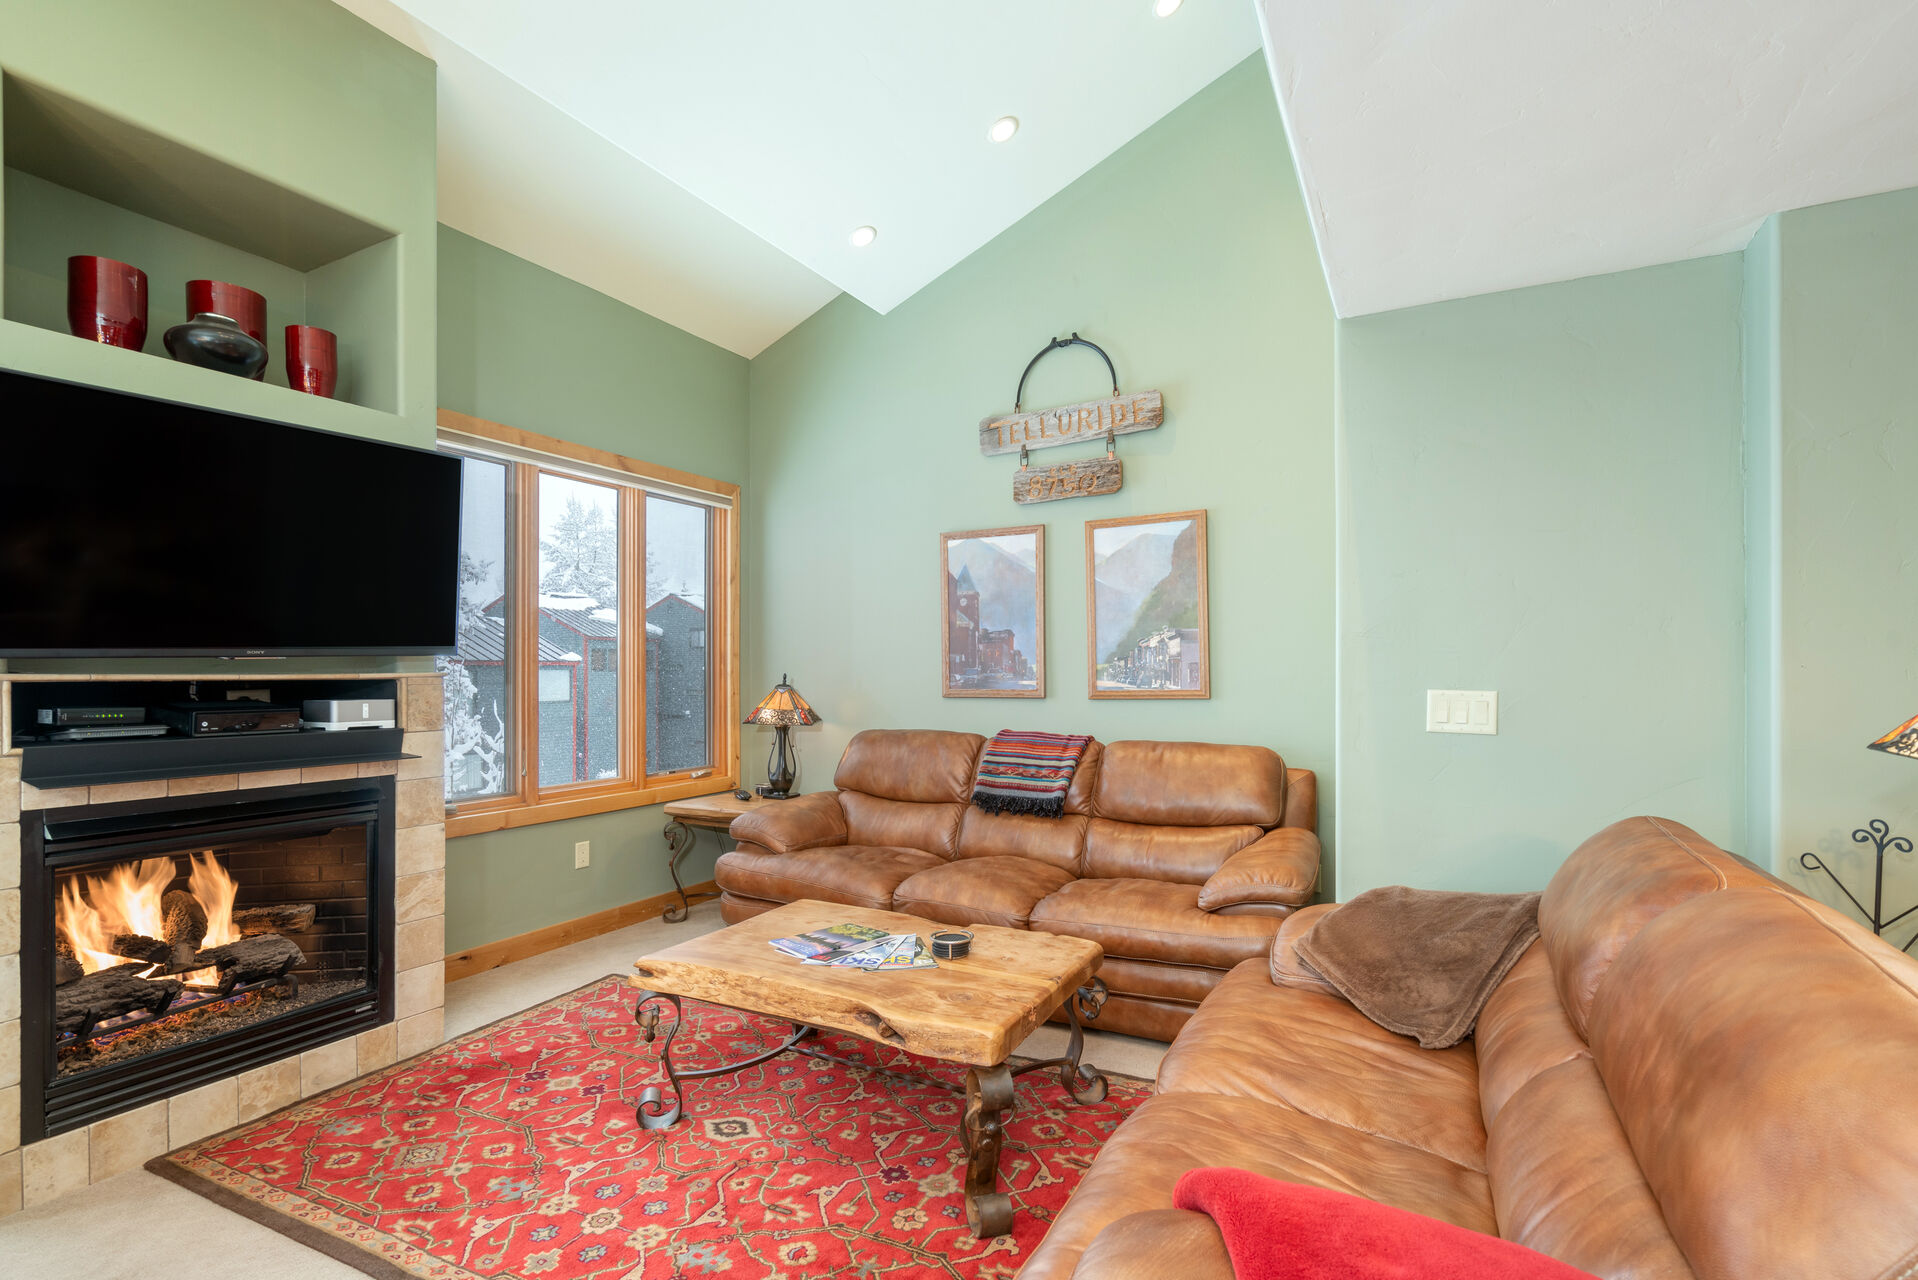 The leather couches, fireplace, and flat-screen TV of this 2 bedroom condo in Telluride.